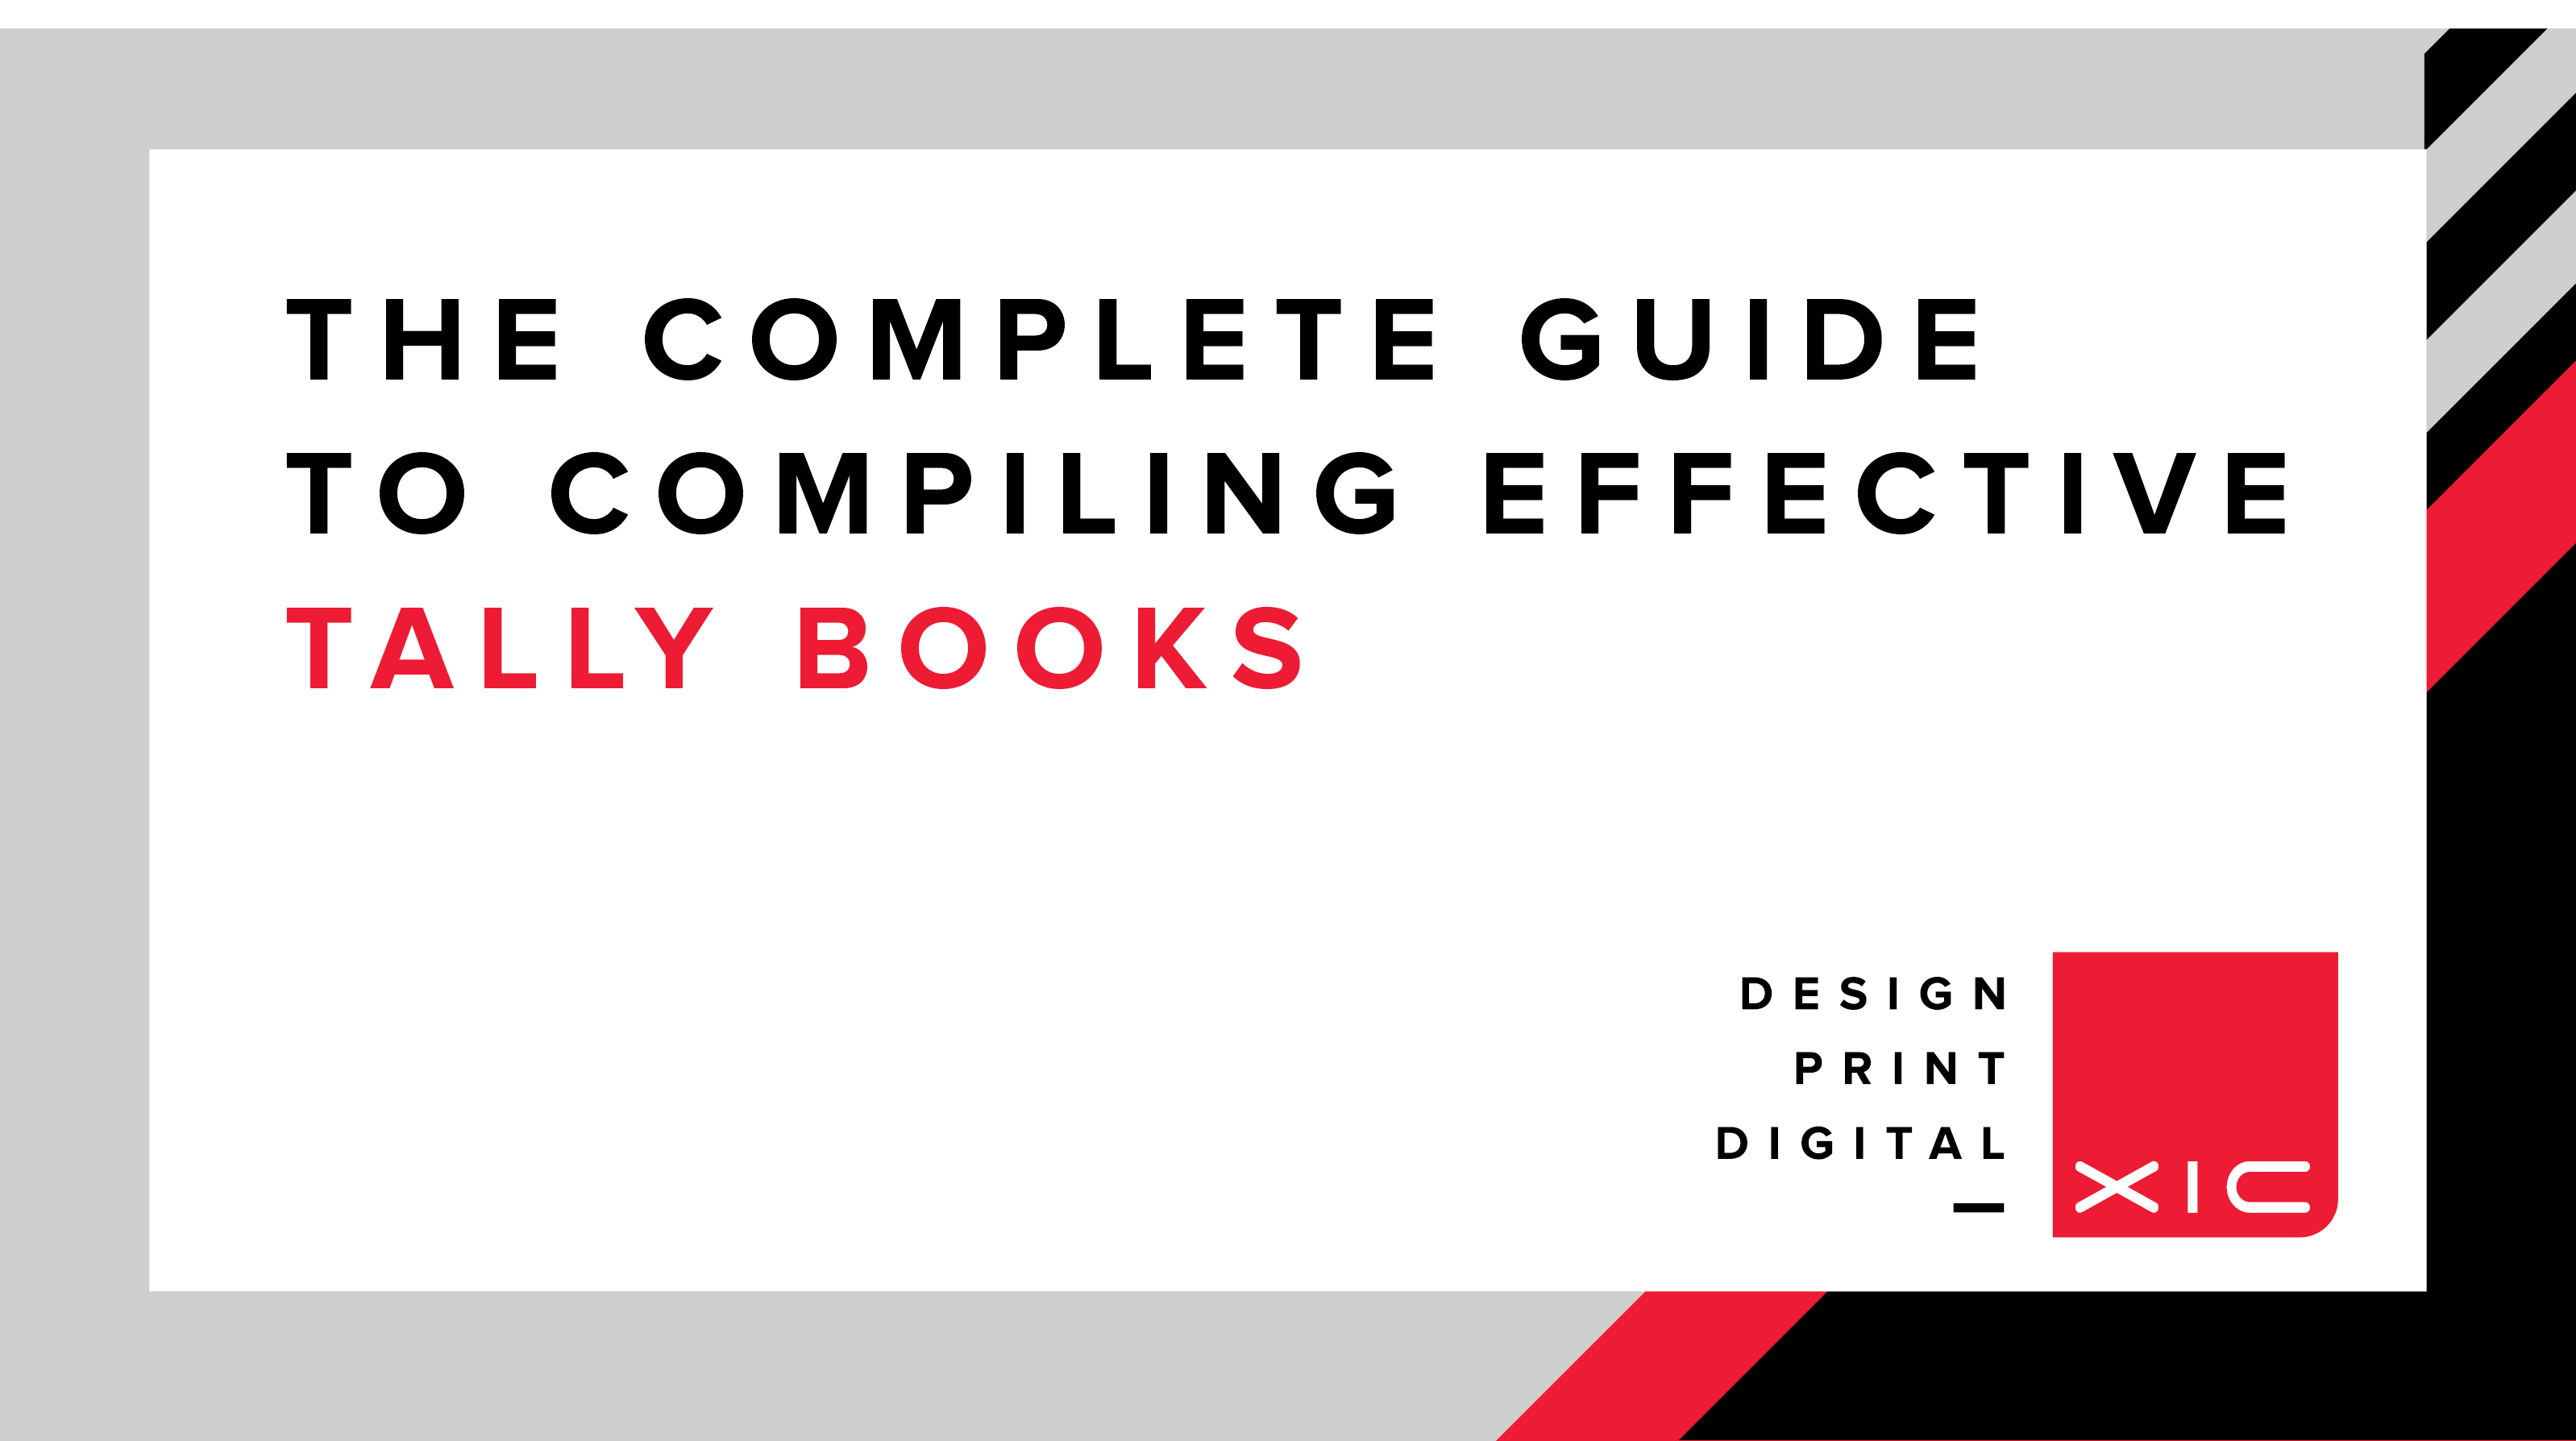 The Complete Guide to Compiling Effective Tally Books